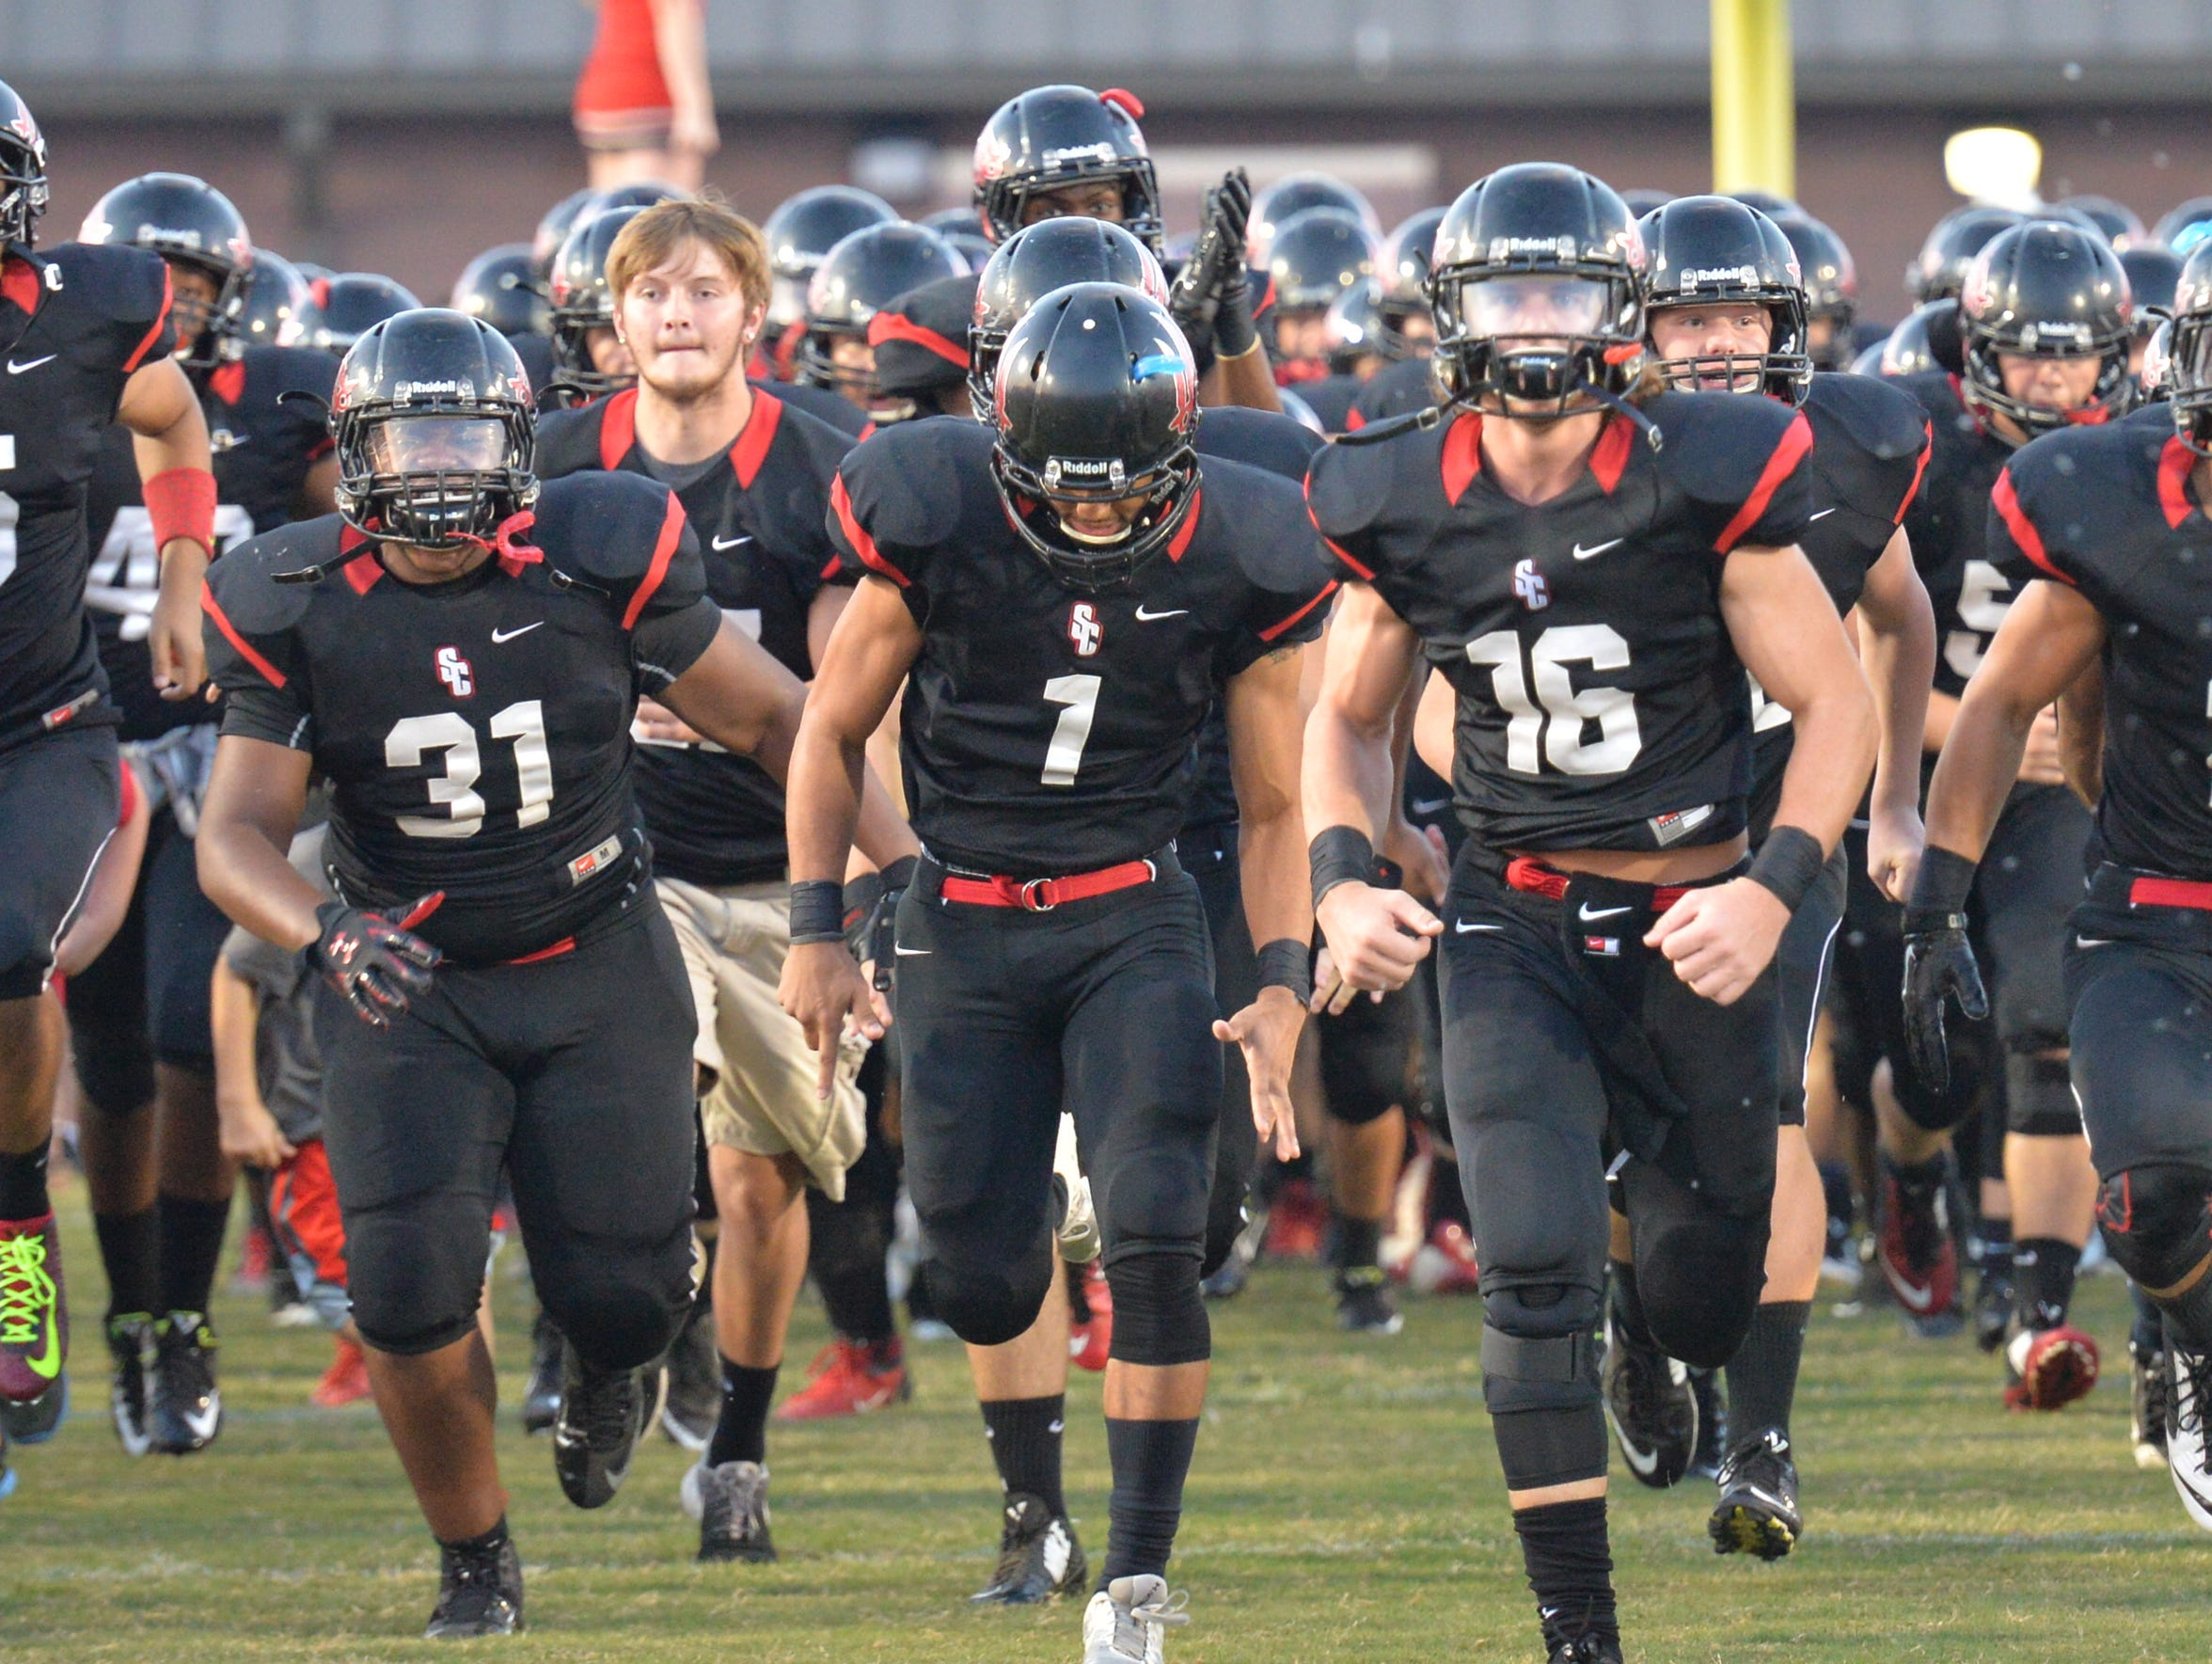 Stewarts Creek's football team finished 6-4, but failed